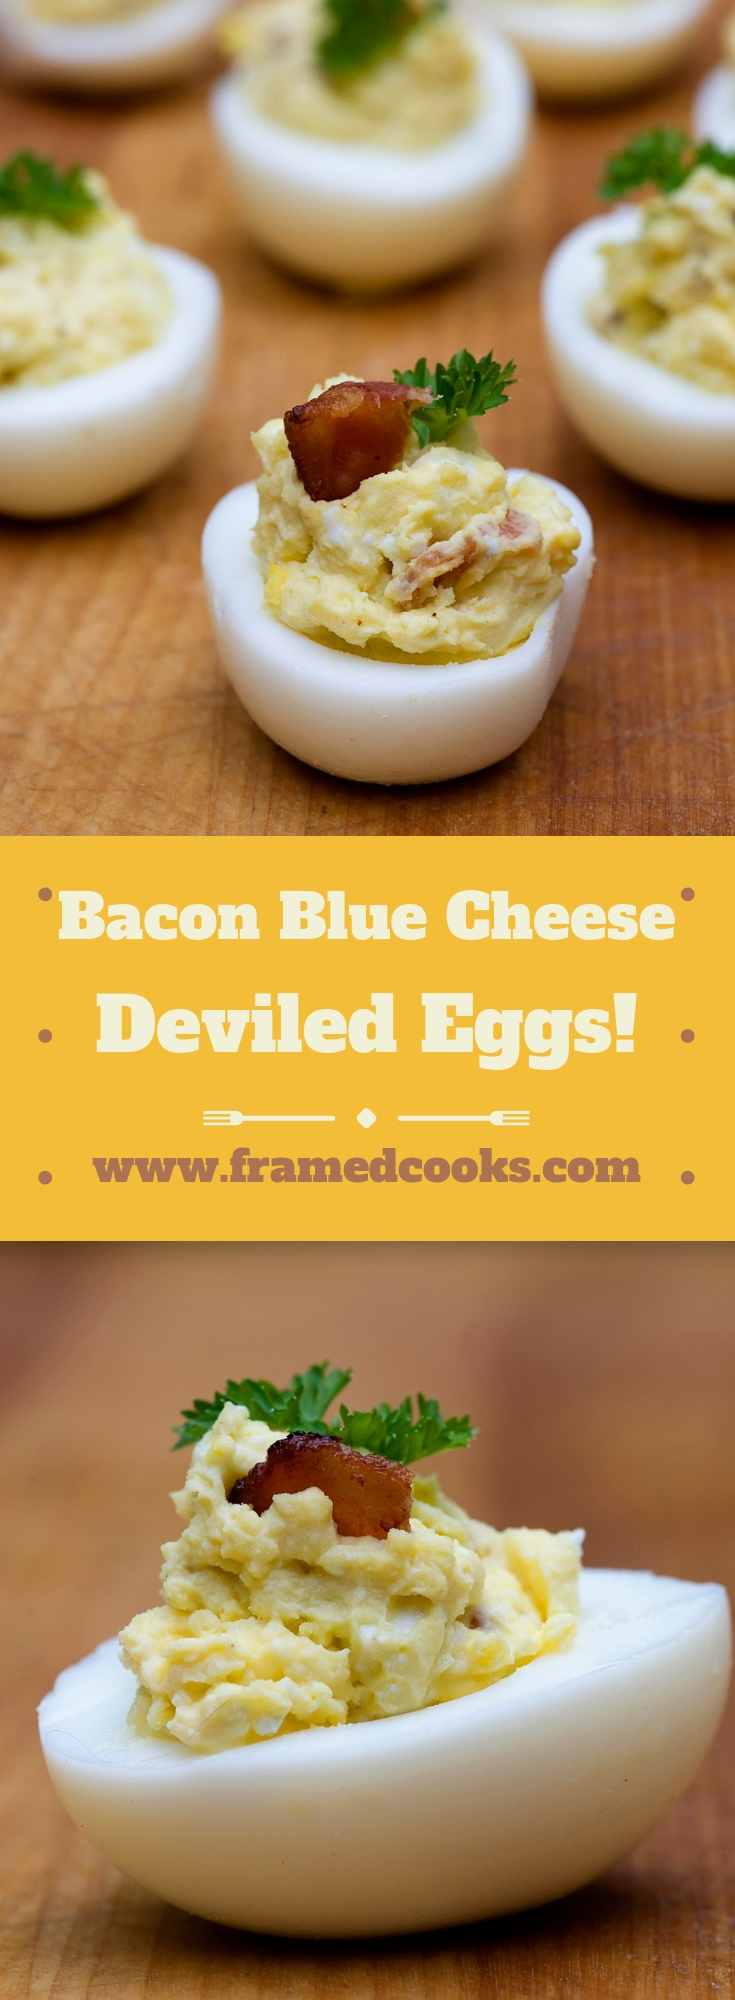 Add some bacon and blue cheese to your next batch of deviled eggs to make them positively heavenly! Bacon blue cheese deviled eggs - the best!